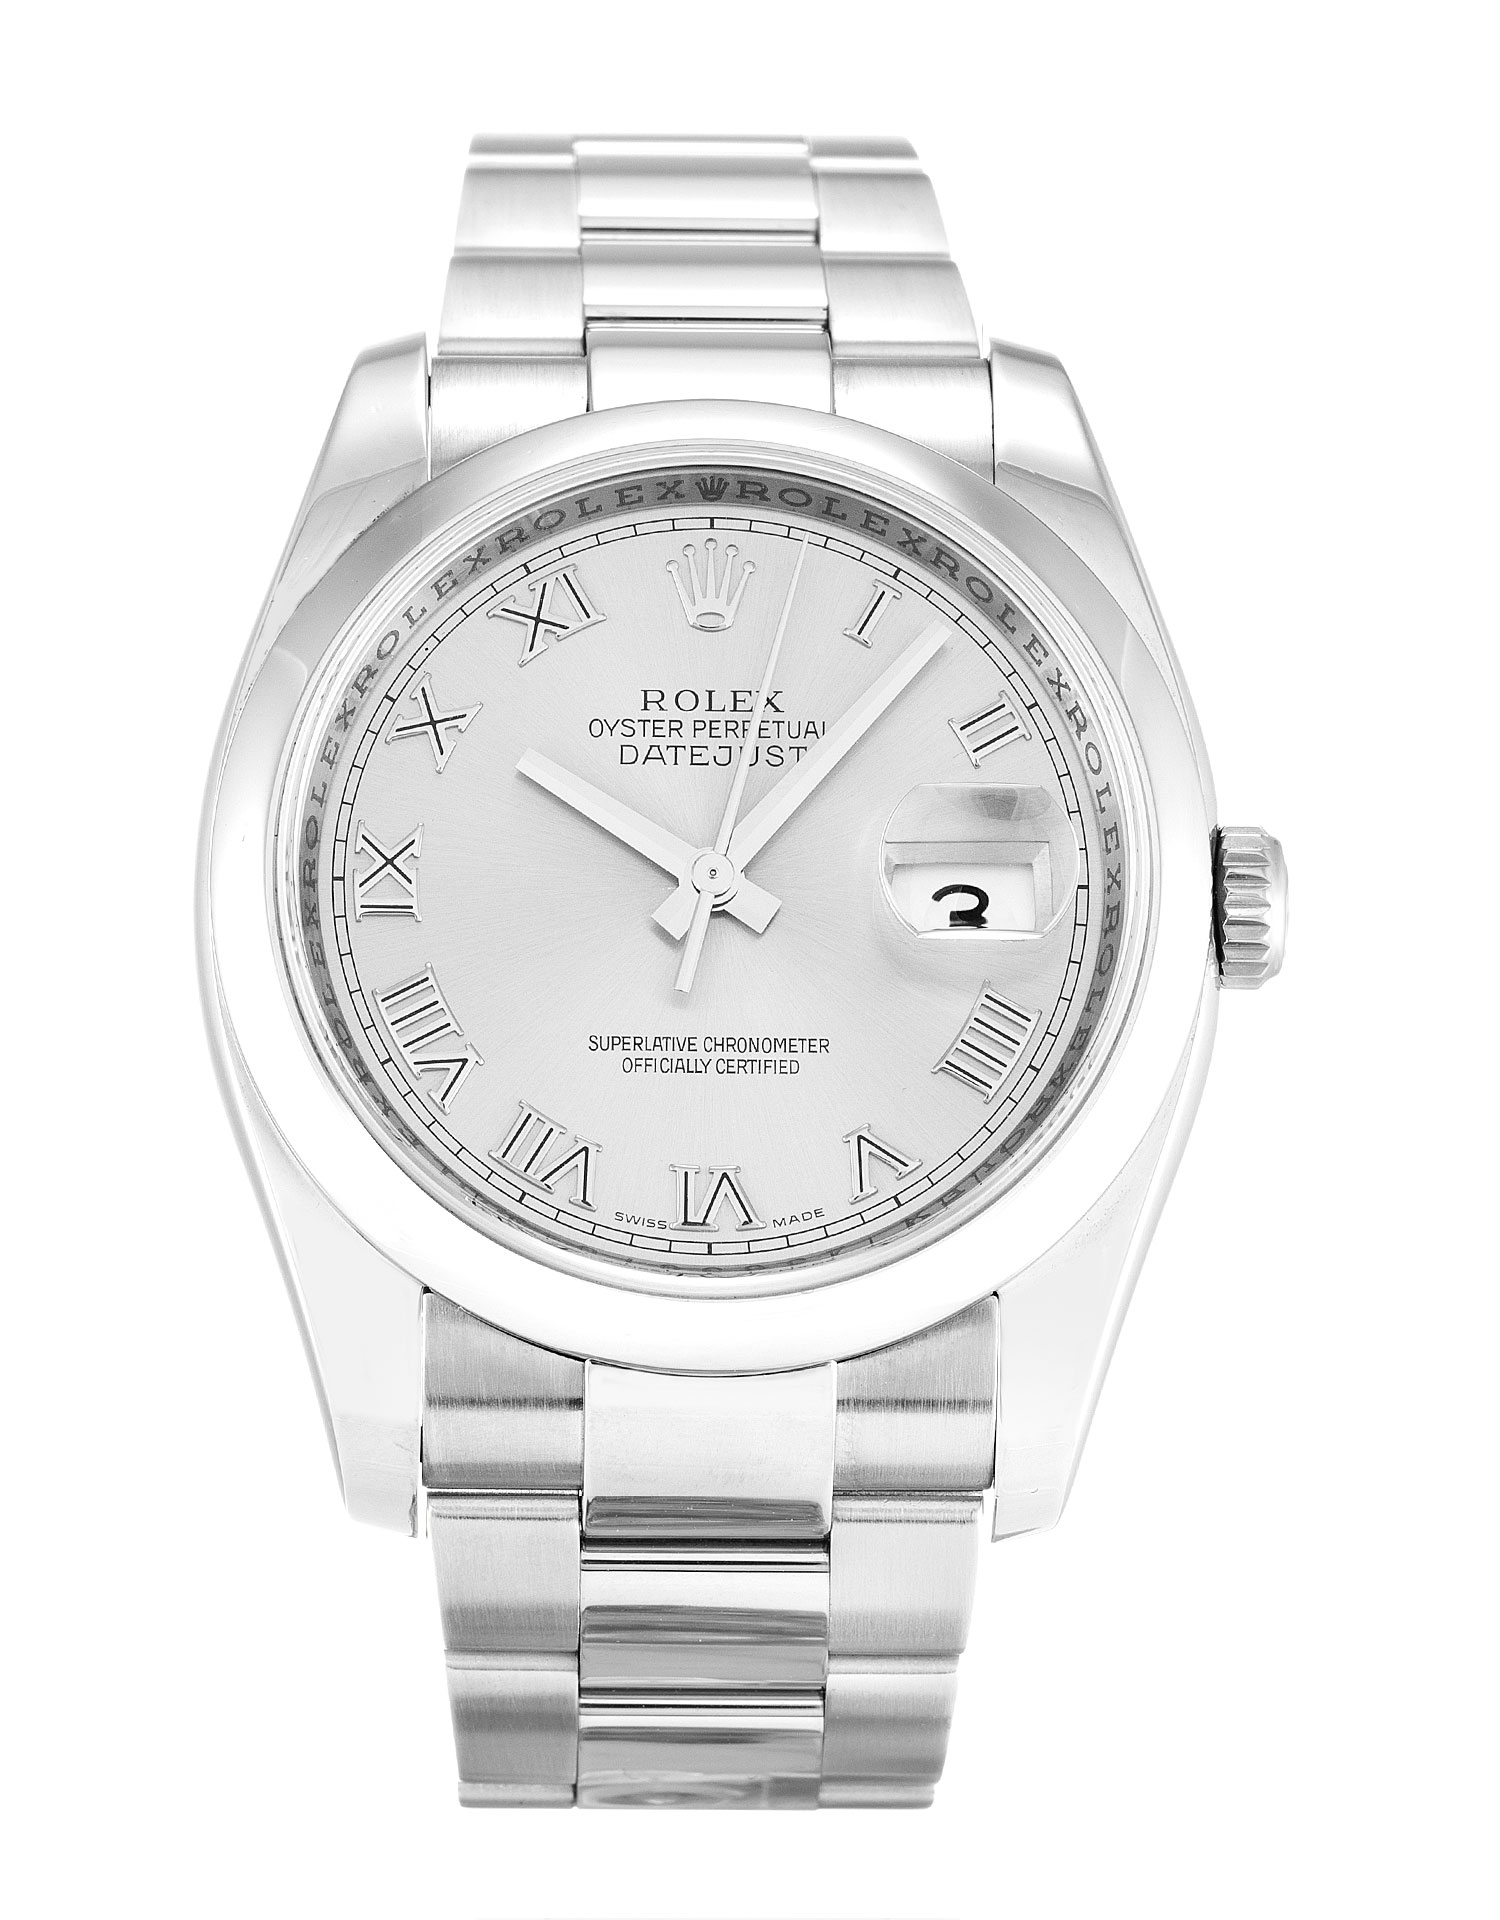 Rolex Datejust 116200 Mens 36 Mm Steel Case Automatic Movement – iapac.to